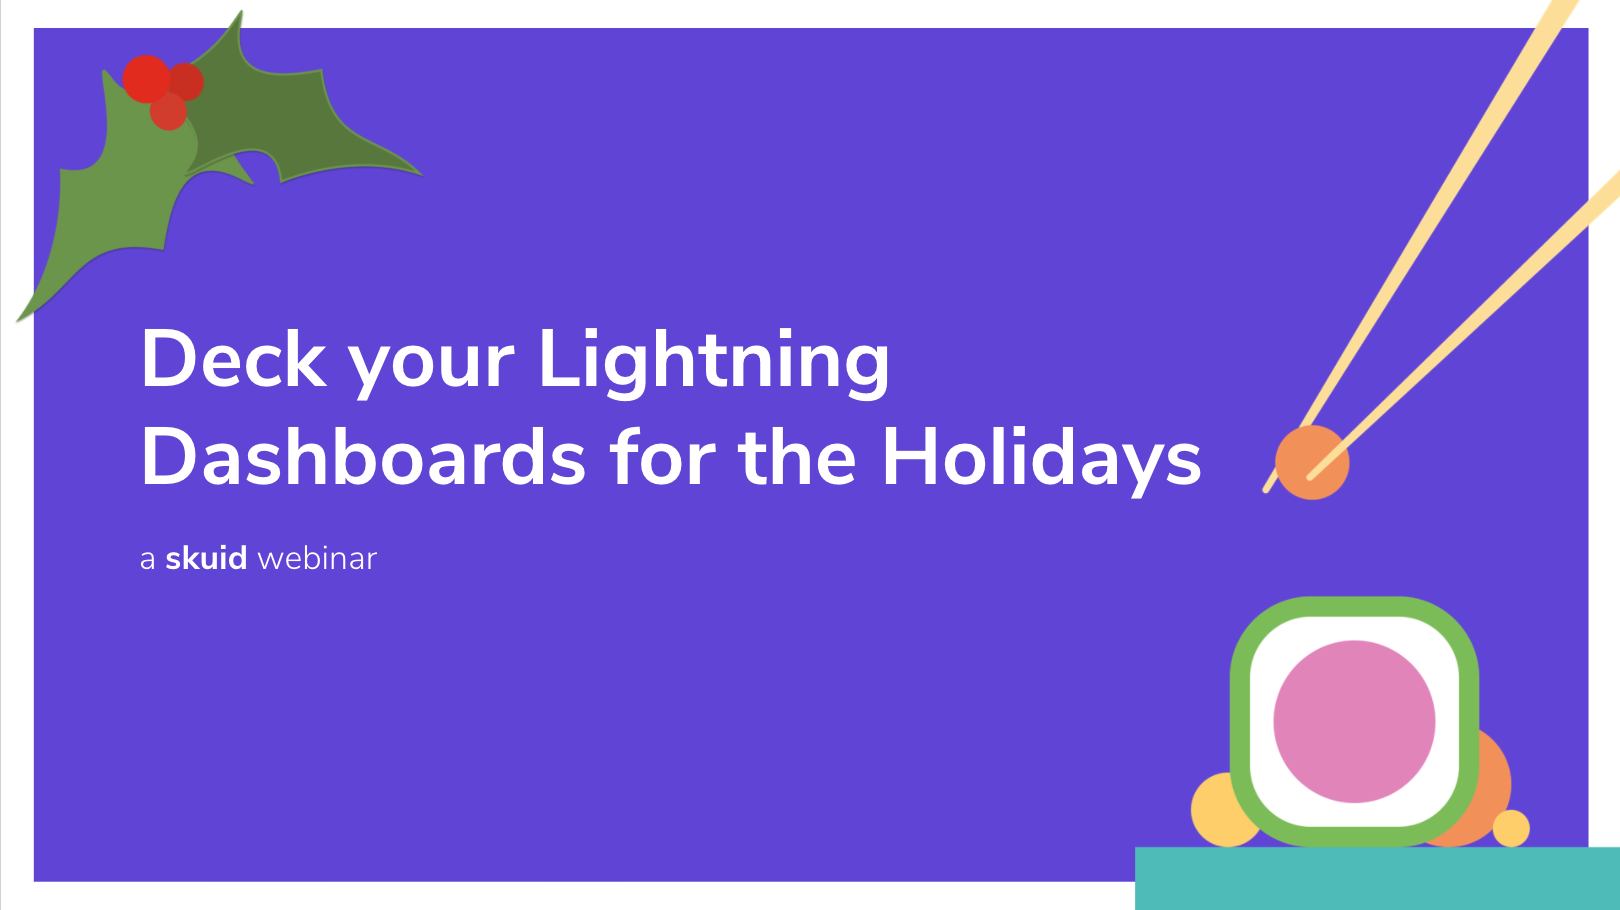 Deck your Salesforce Lightning dashboards for the holidays!